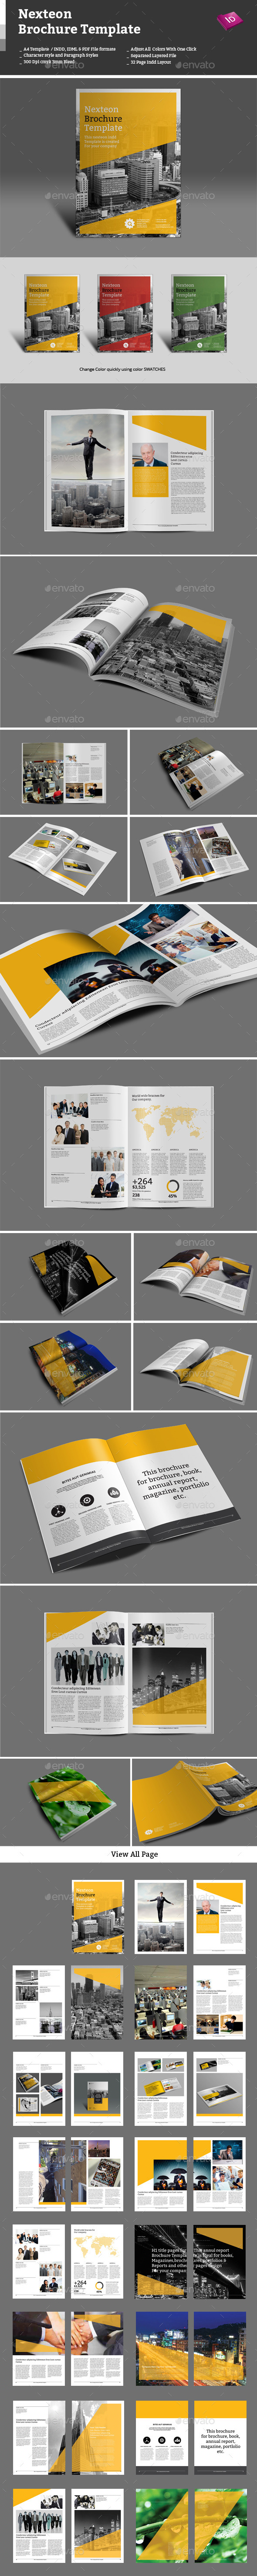 GraphicRiver Nexteon Brochure Template 9460175